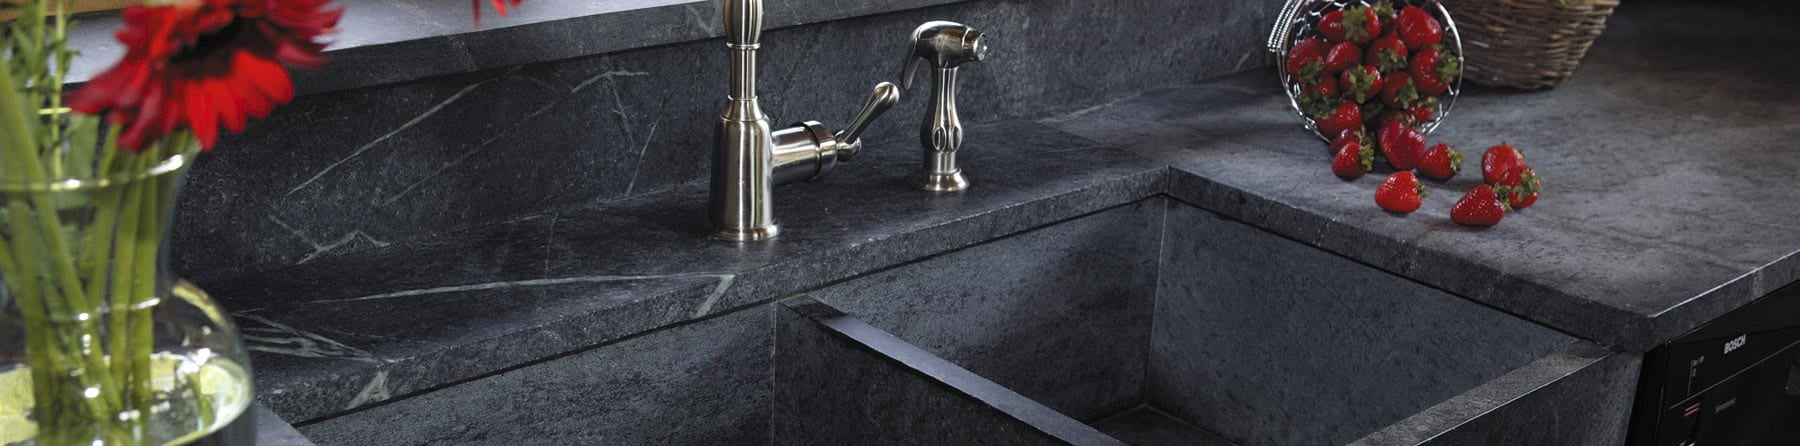 Granite Countertop Installation And Repair In Frederick, Maryland Sink And  Faucet Installation In Frederick, ...